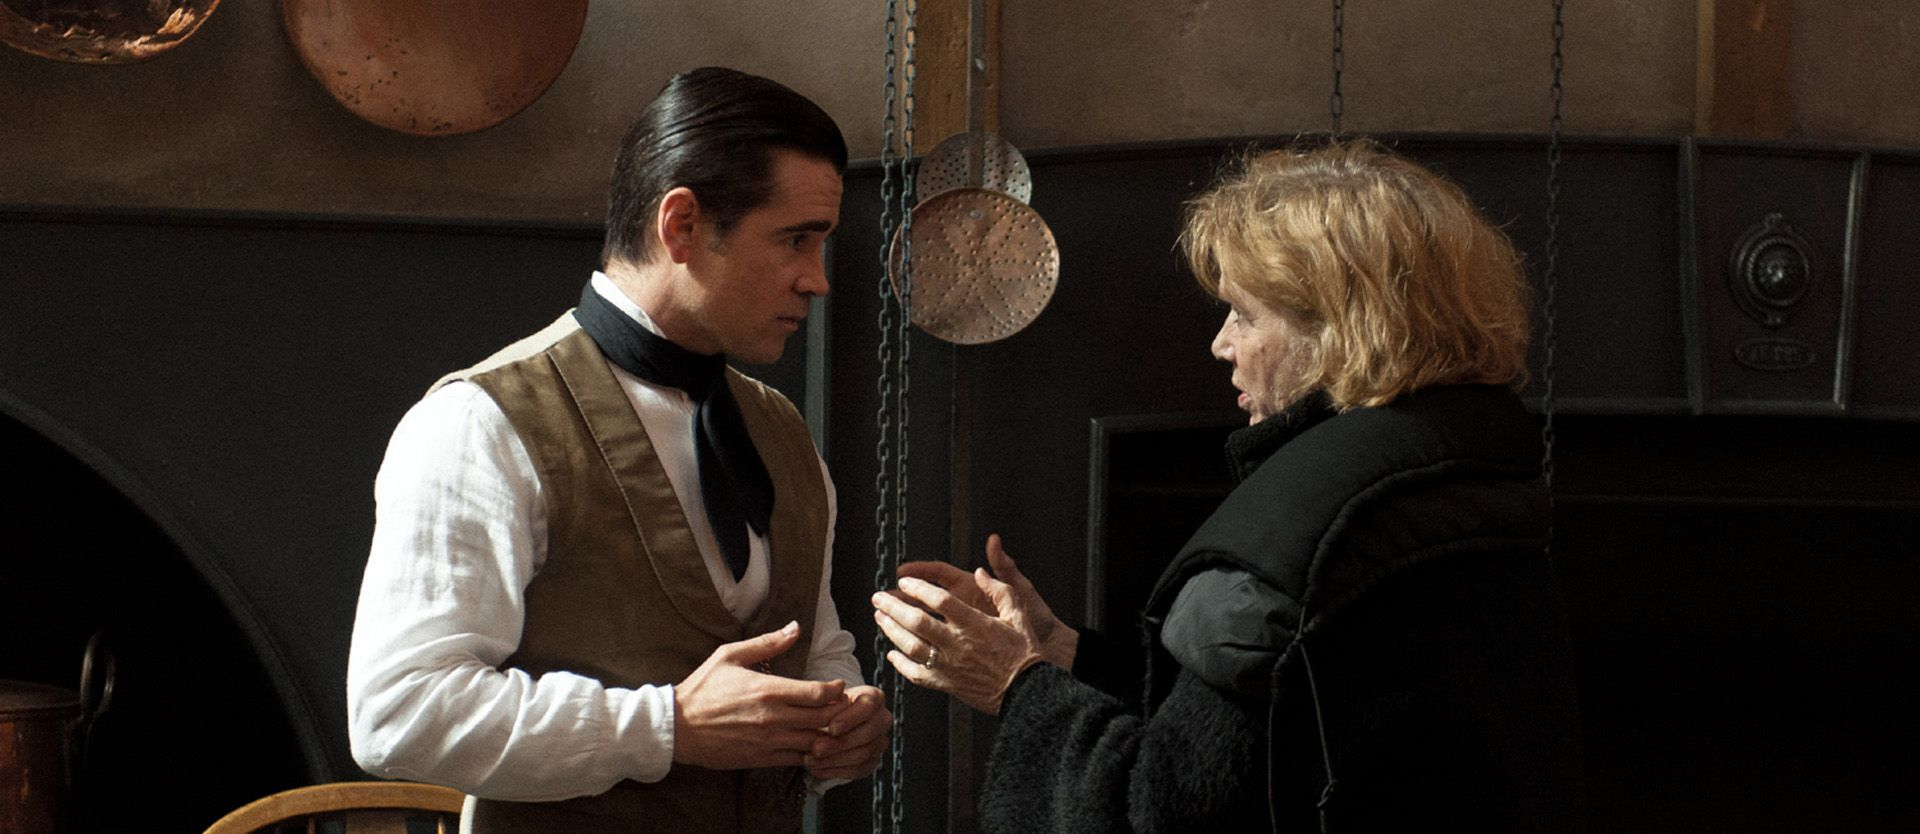 Interview: Liv Ullmann Talks Miss Julie, Jessica Chastain, and More